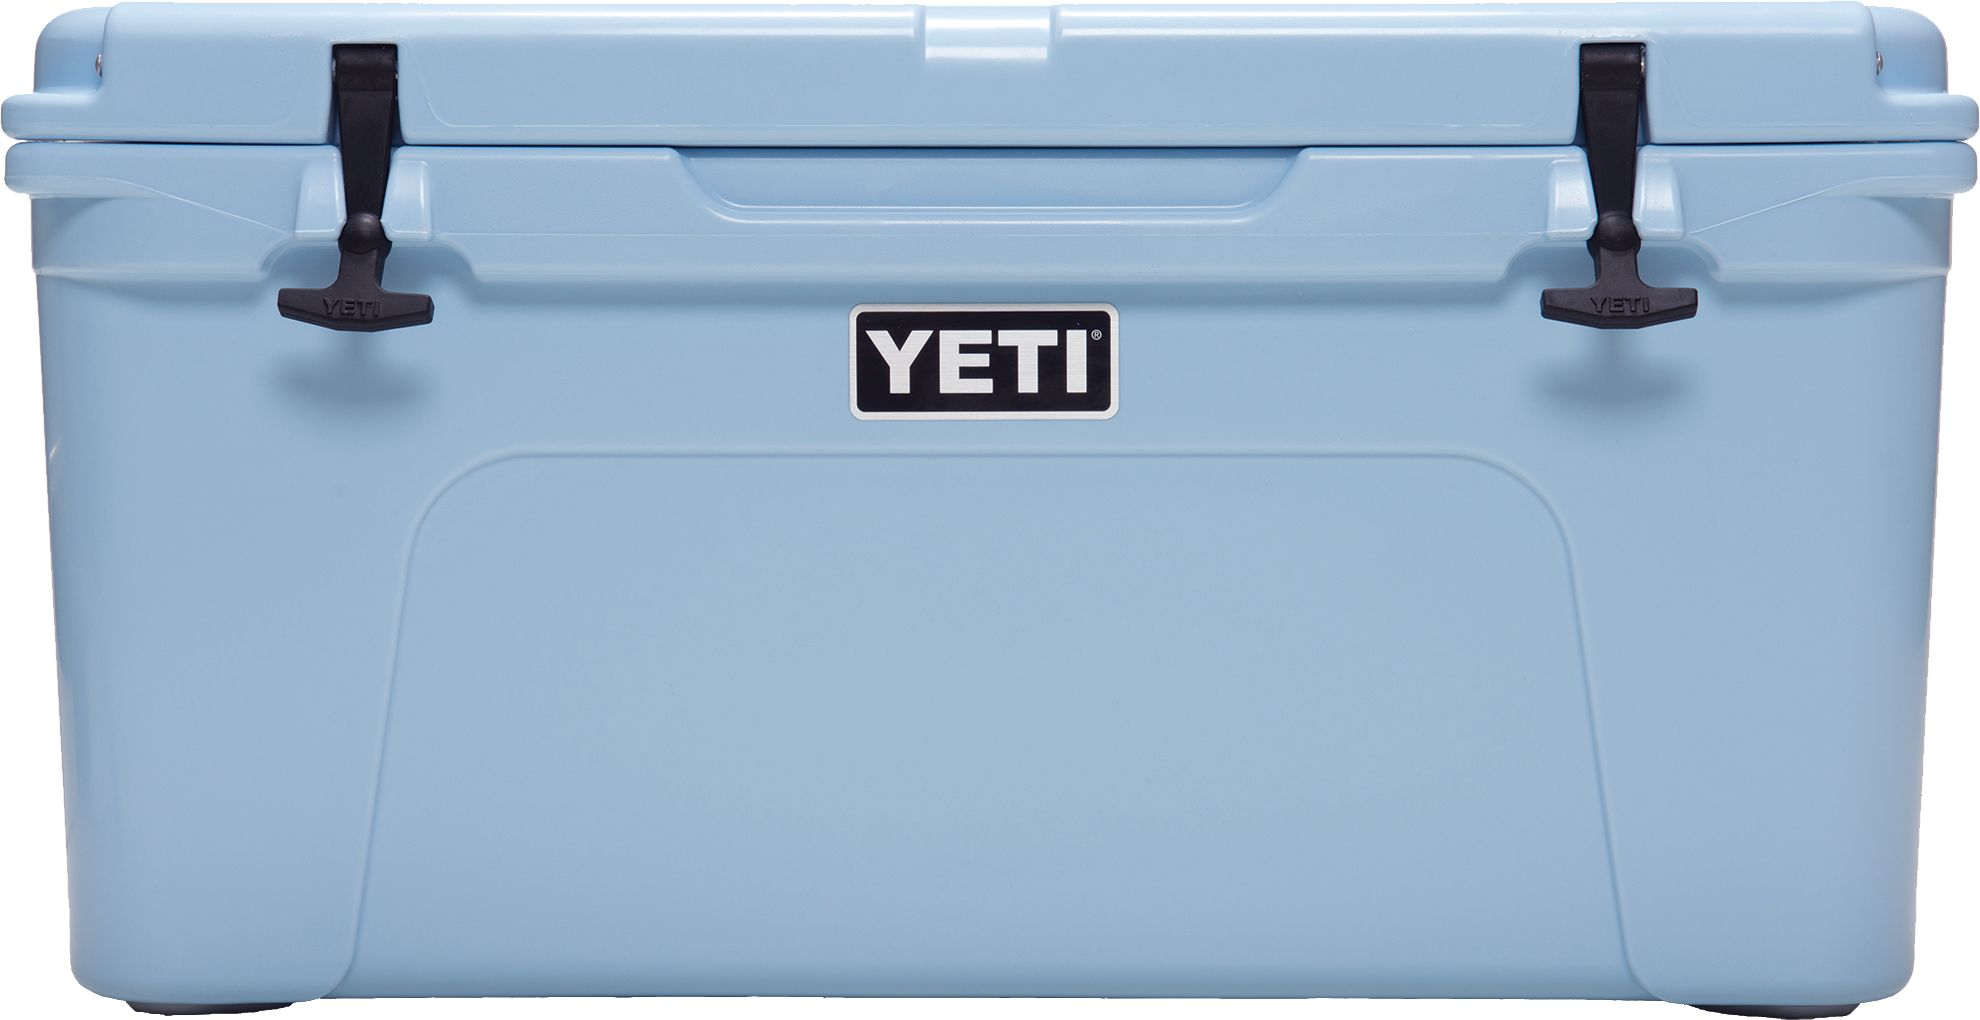 What Is A Yeti Cooler